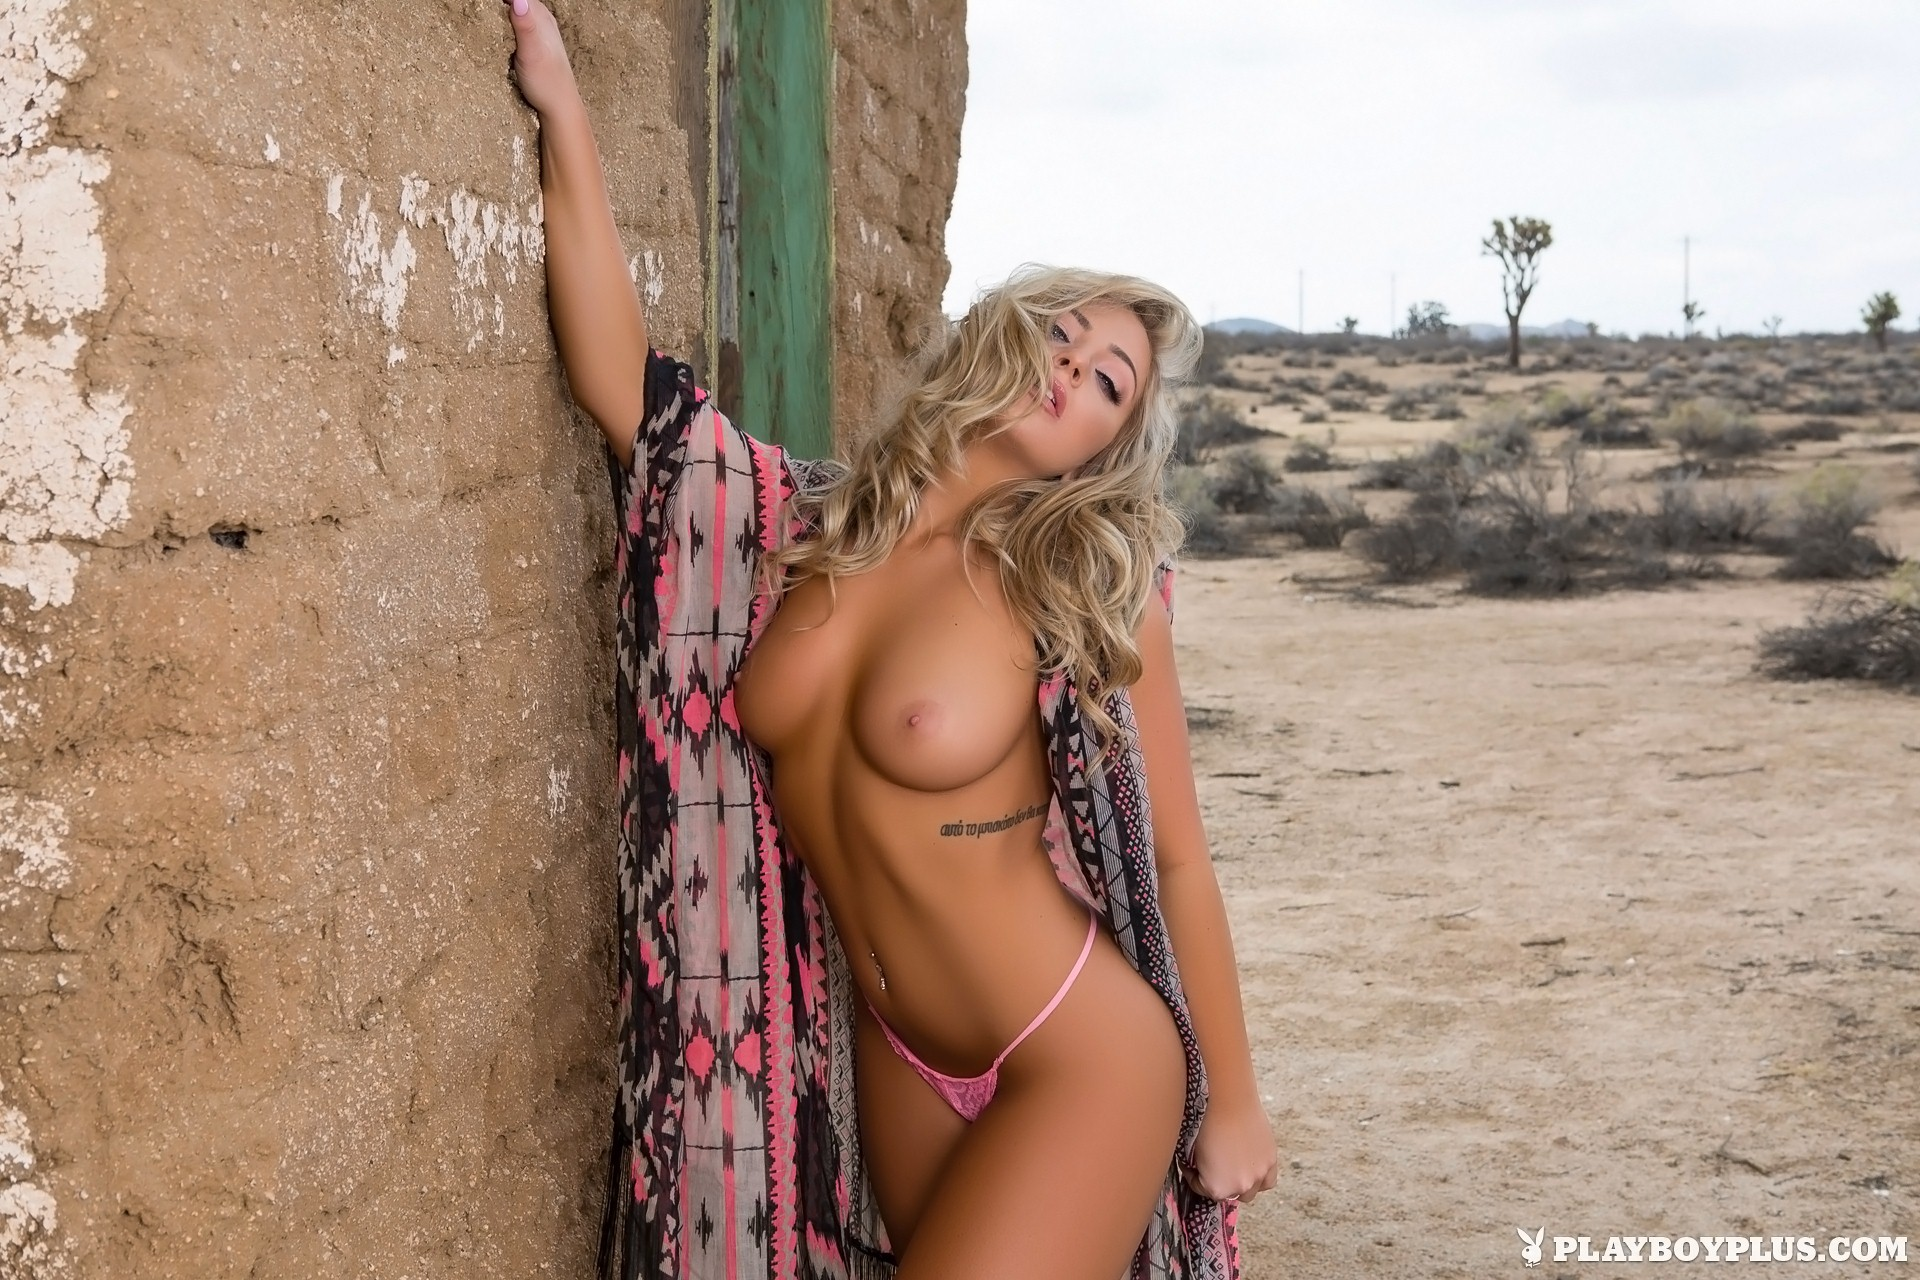 from Tomas nude woman in the desert